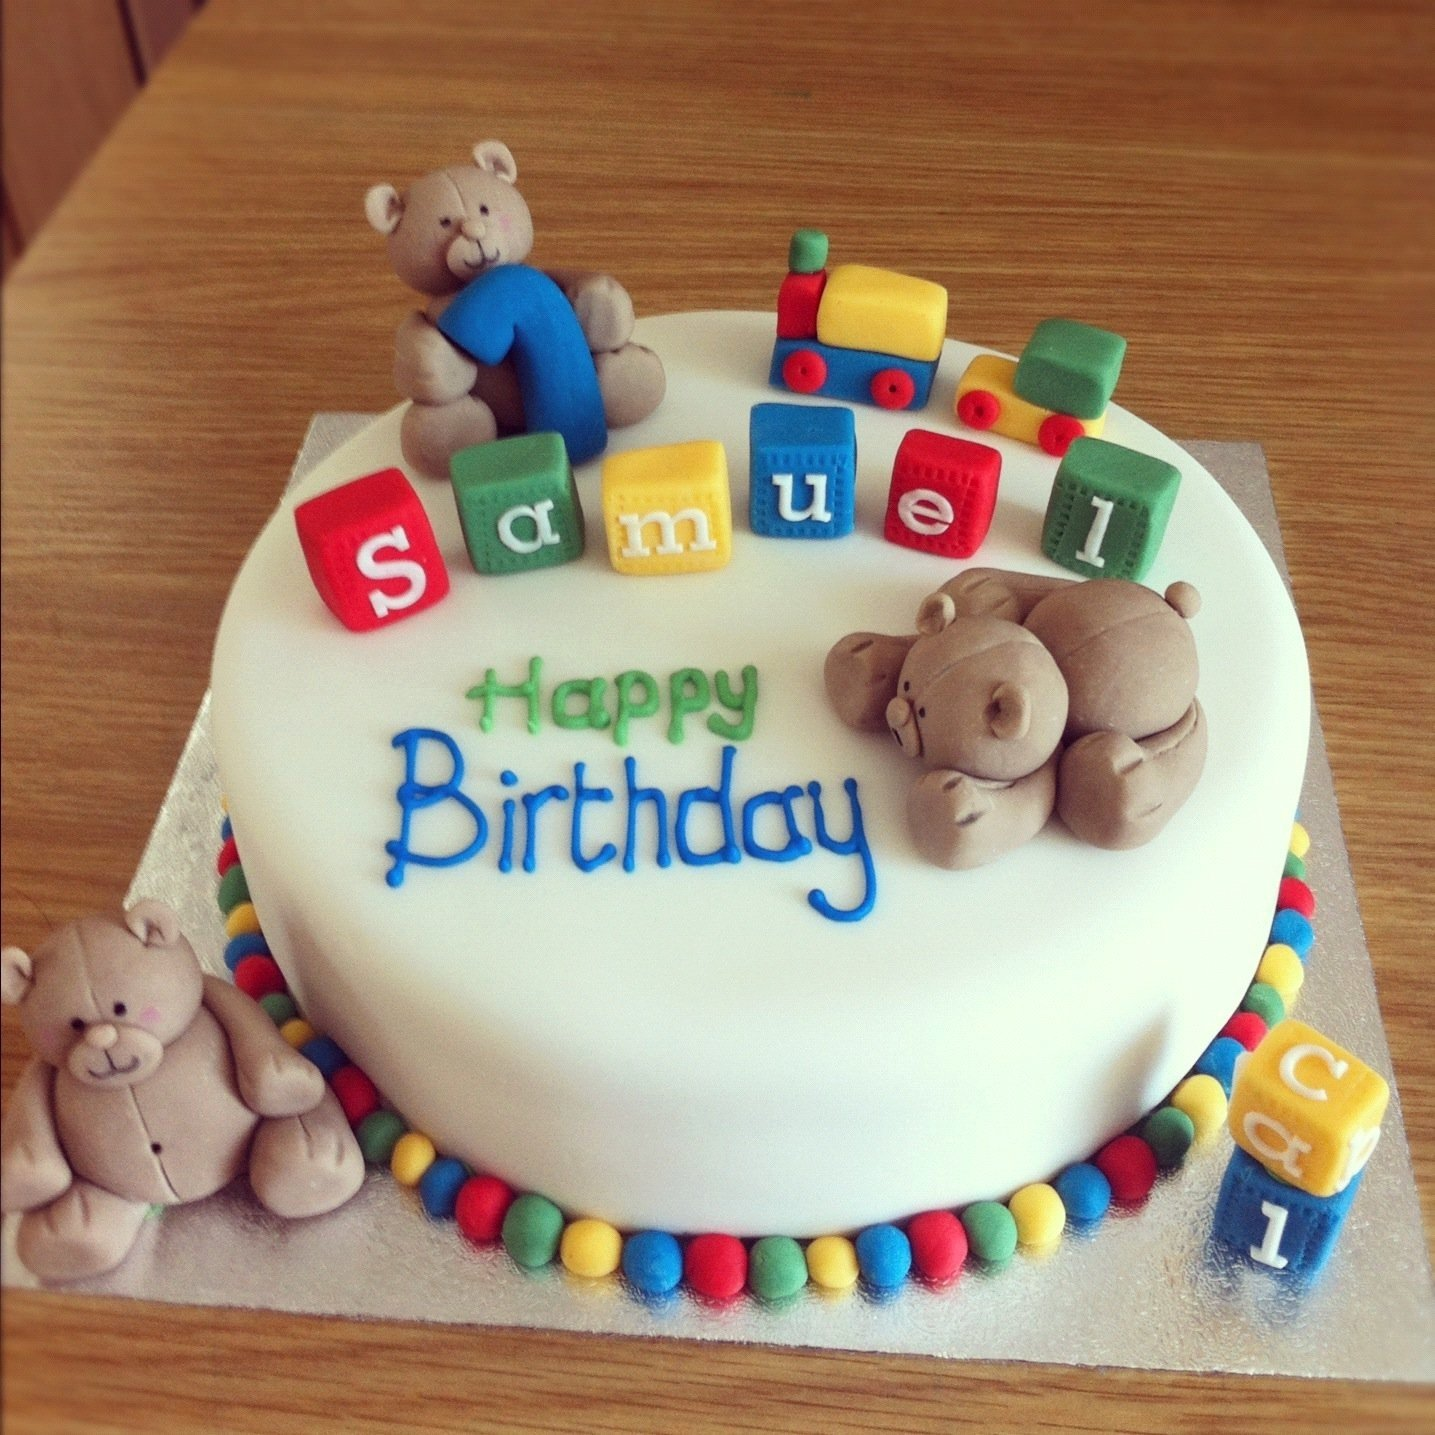 10 Amazing 2 Year Old Birthday Cake Ideas wonderful cake design for 2 year old boy and delicious ideas of 15